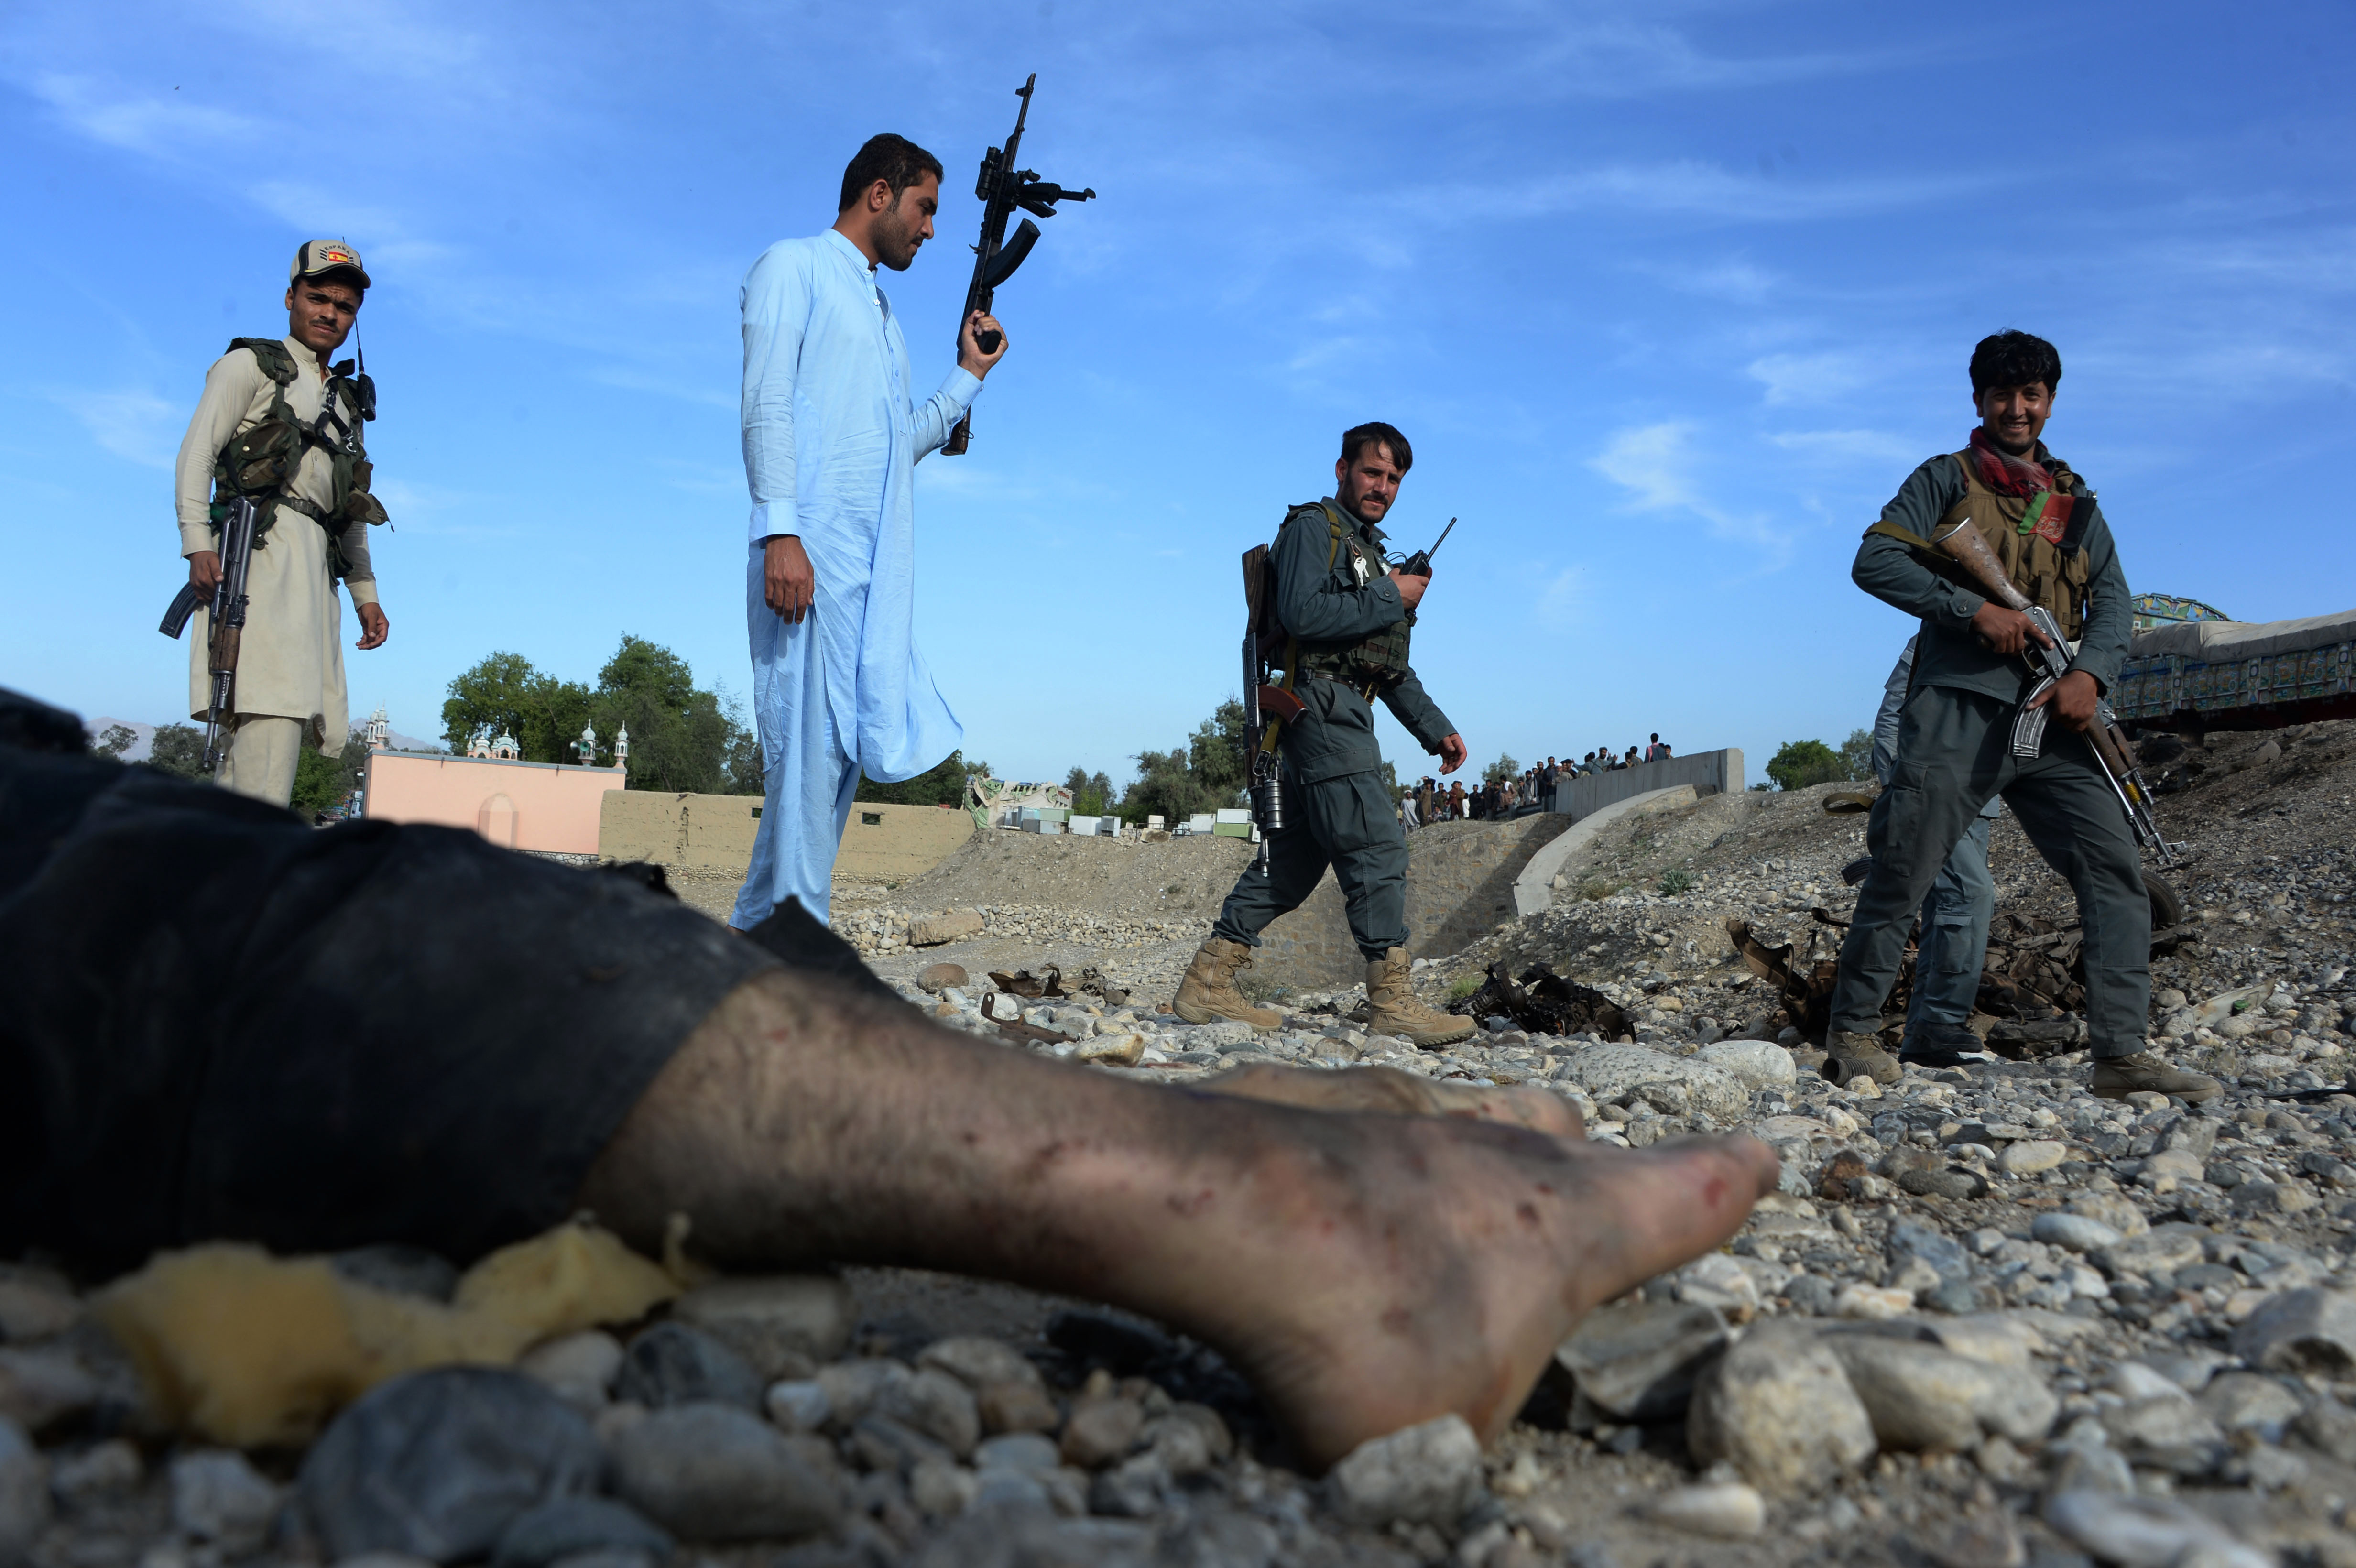 Devastating consequences face Afghans joining ISIS